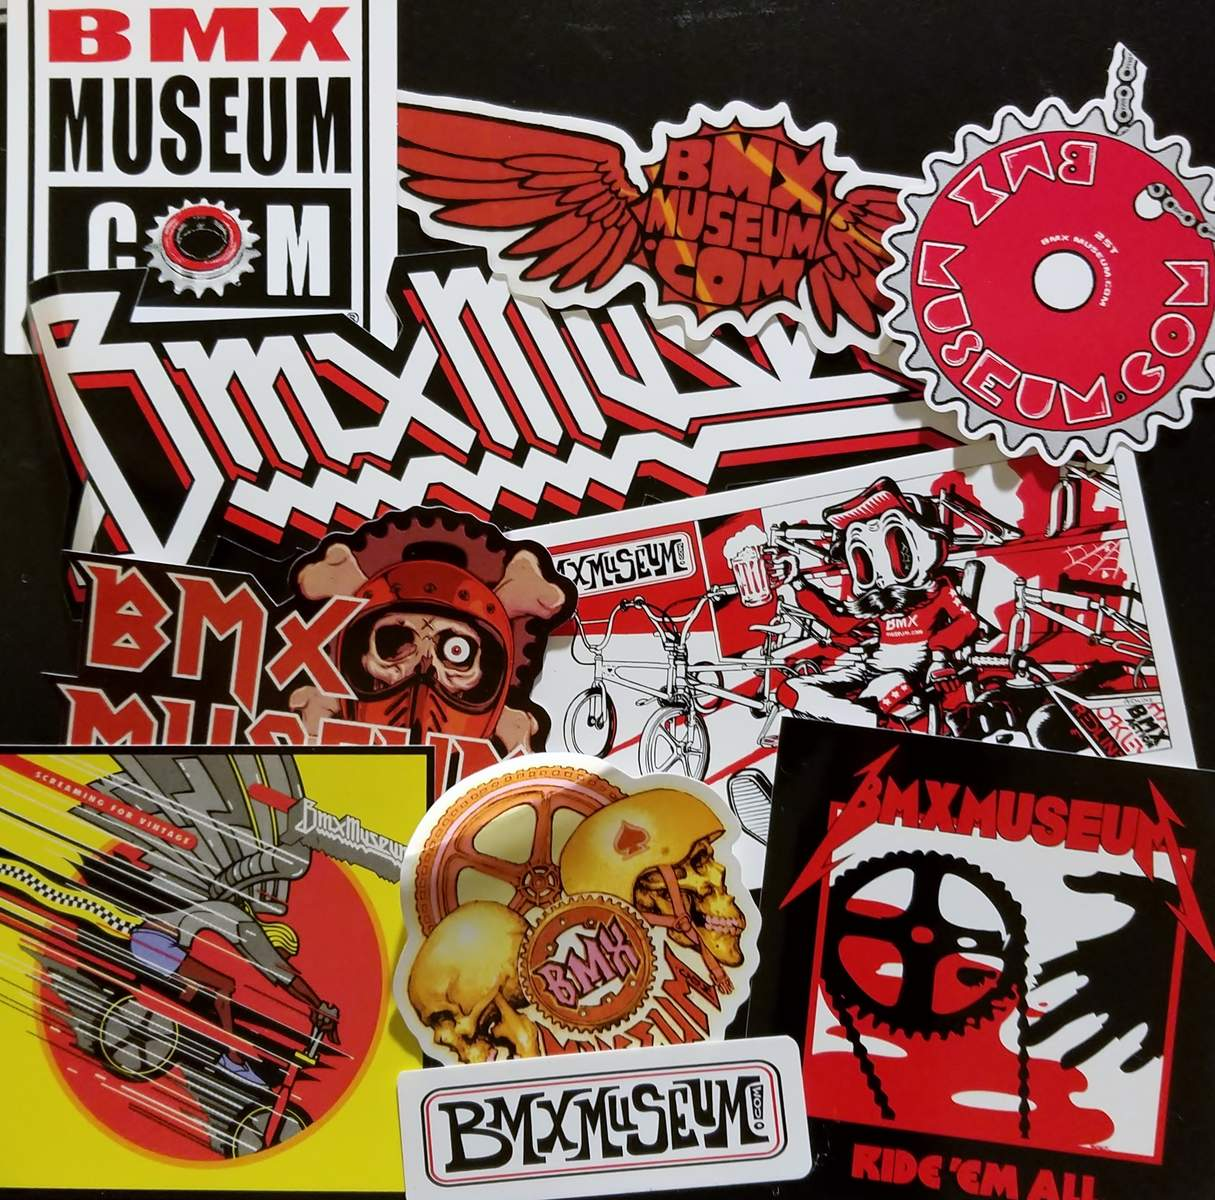 http://uploads.bmxmuseum.com/user-images/5157/bmx-museum-stickers58743e9c28.jpg